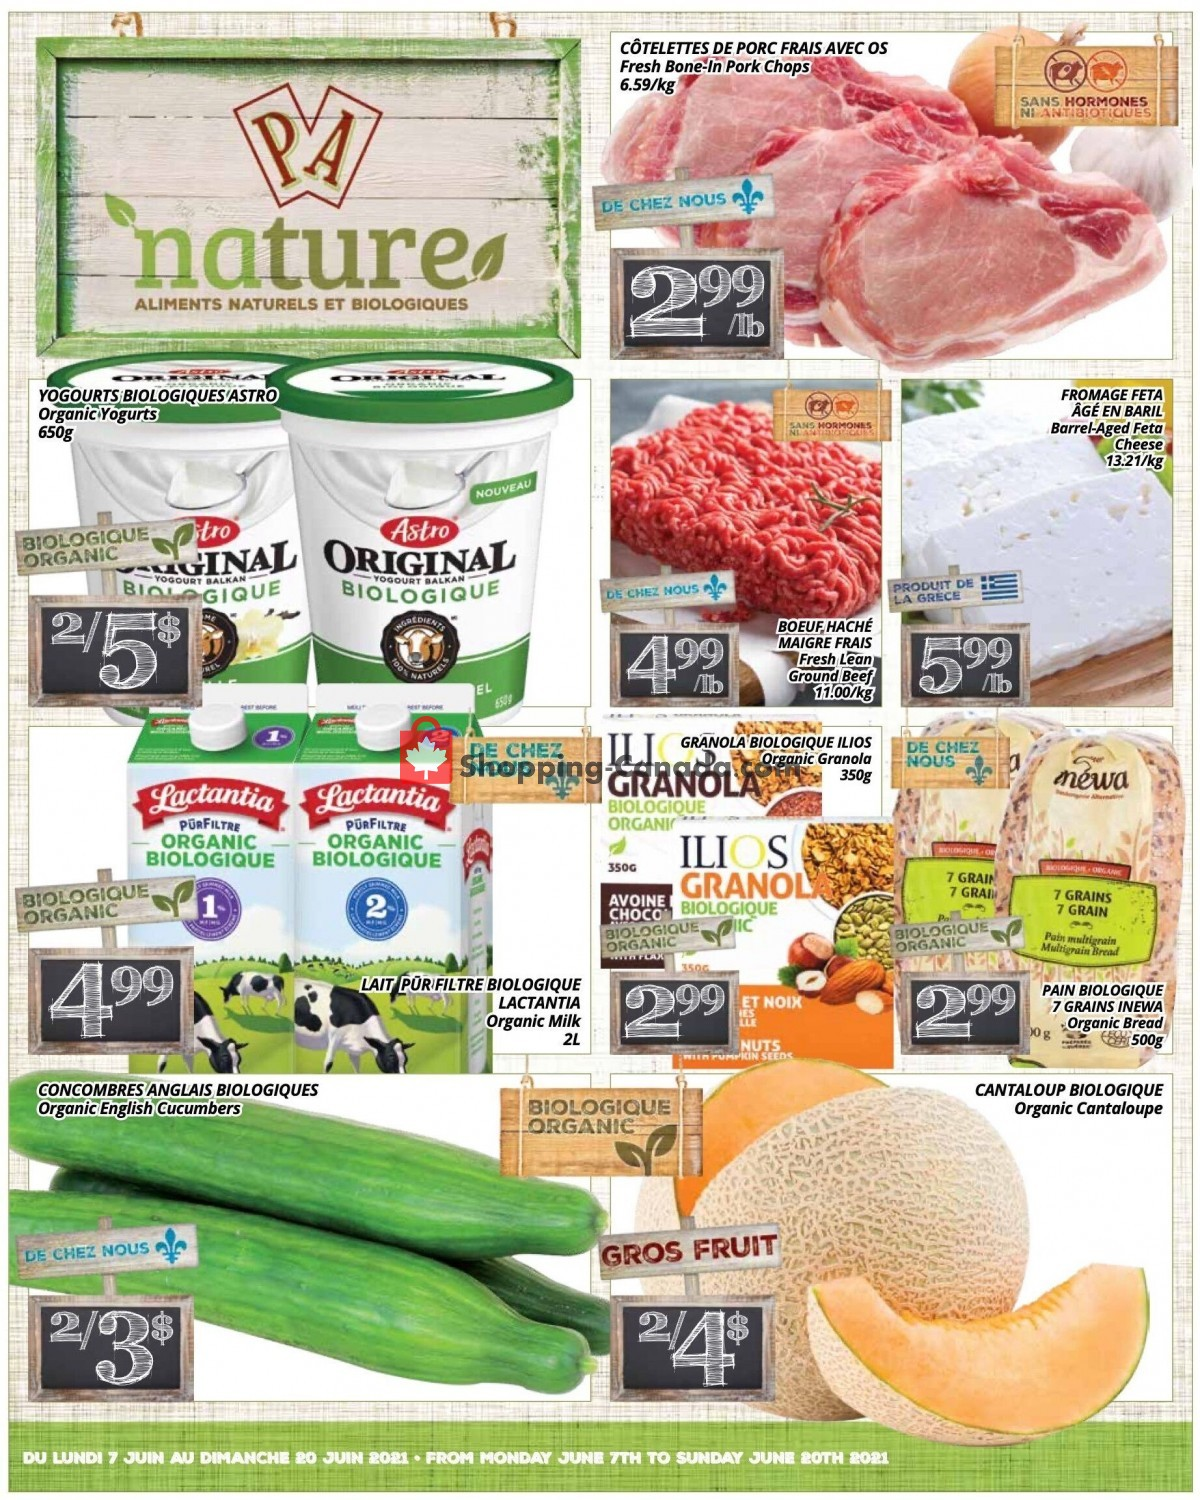 Flyer PA Nature Canada - from Monday June 7, 2021 to Sunday June 20, 2021